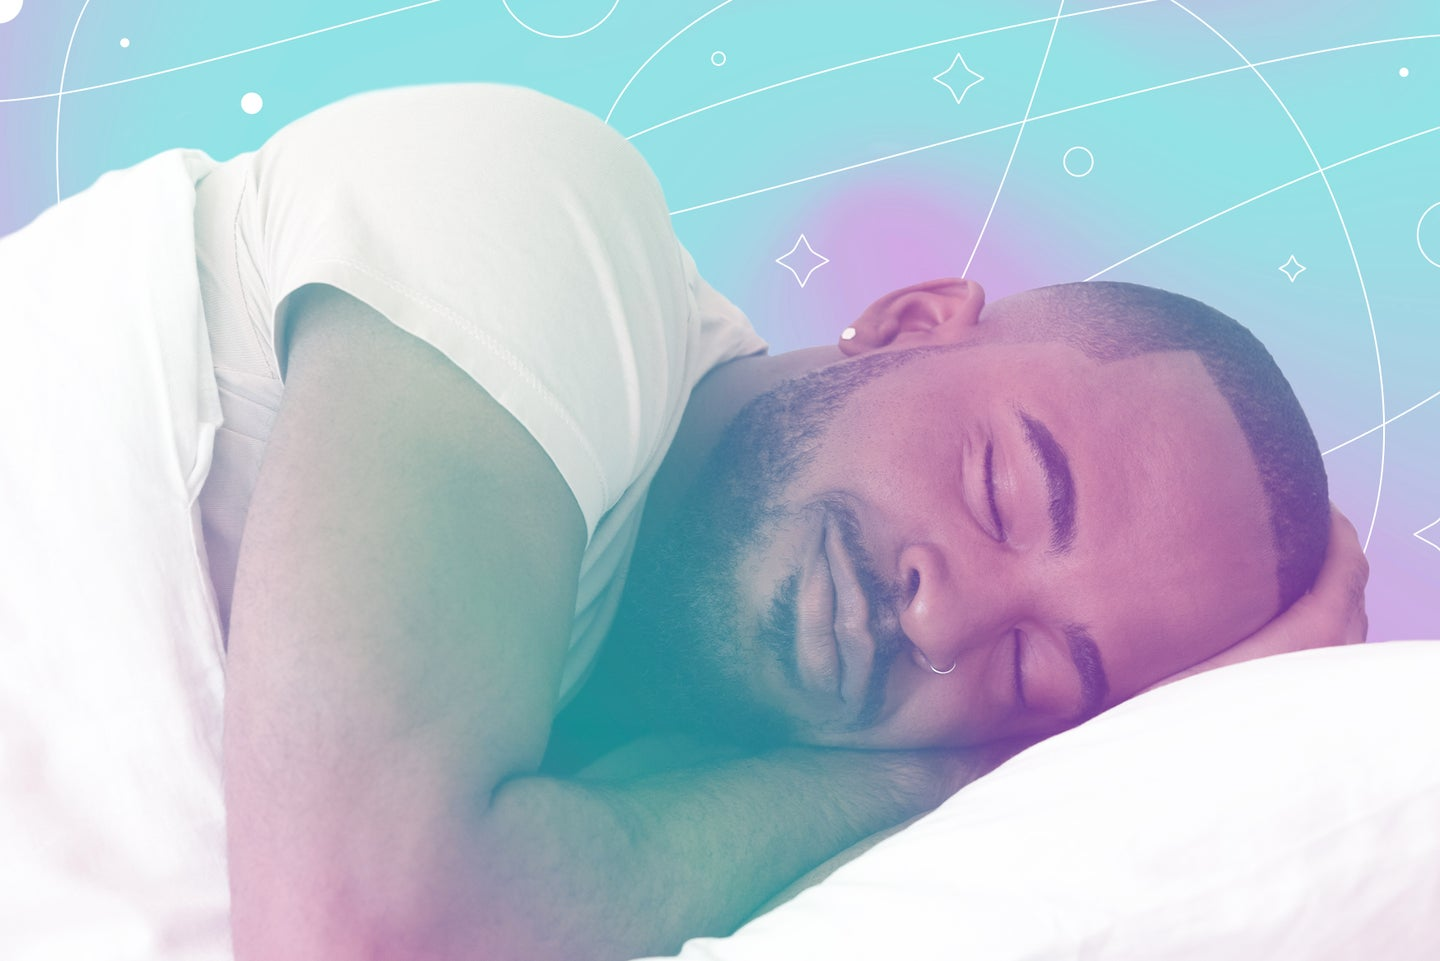 A man sleeping in a bed on a pillow with a white blanket.